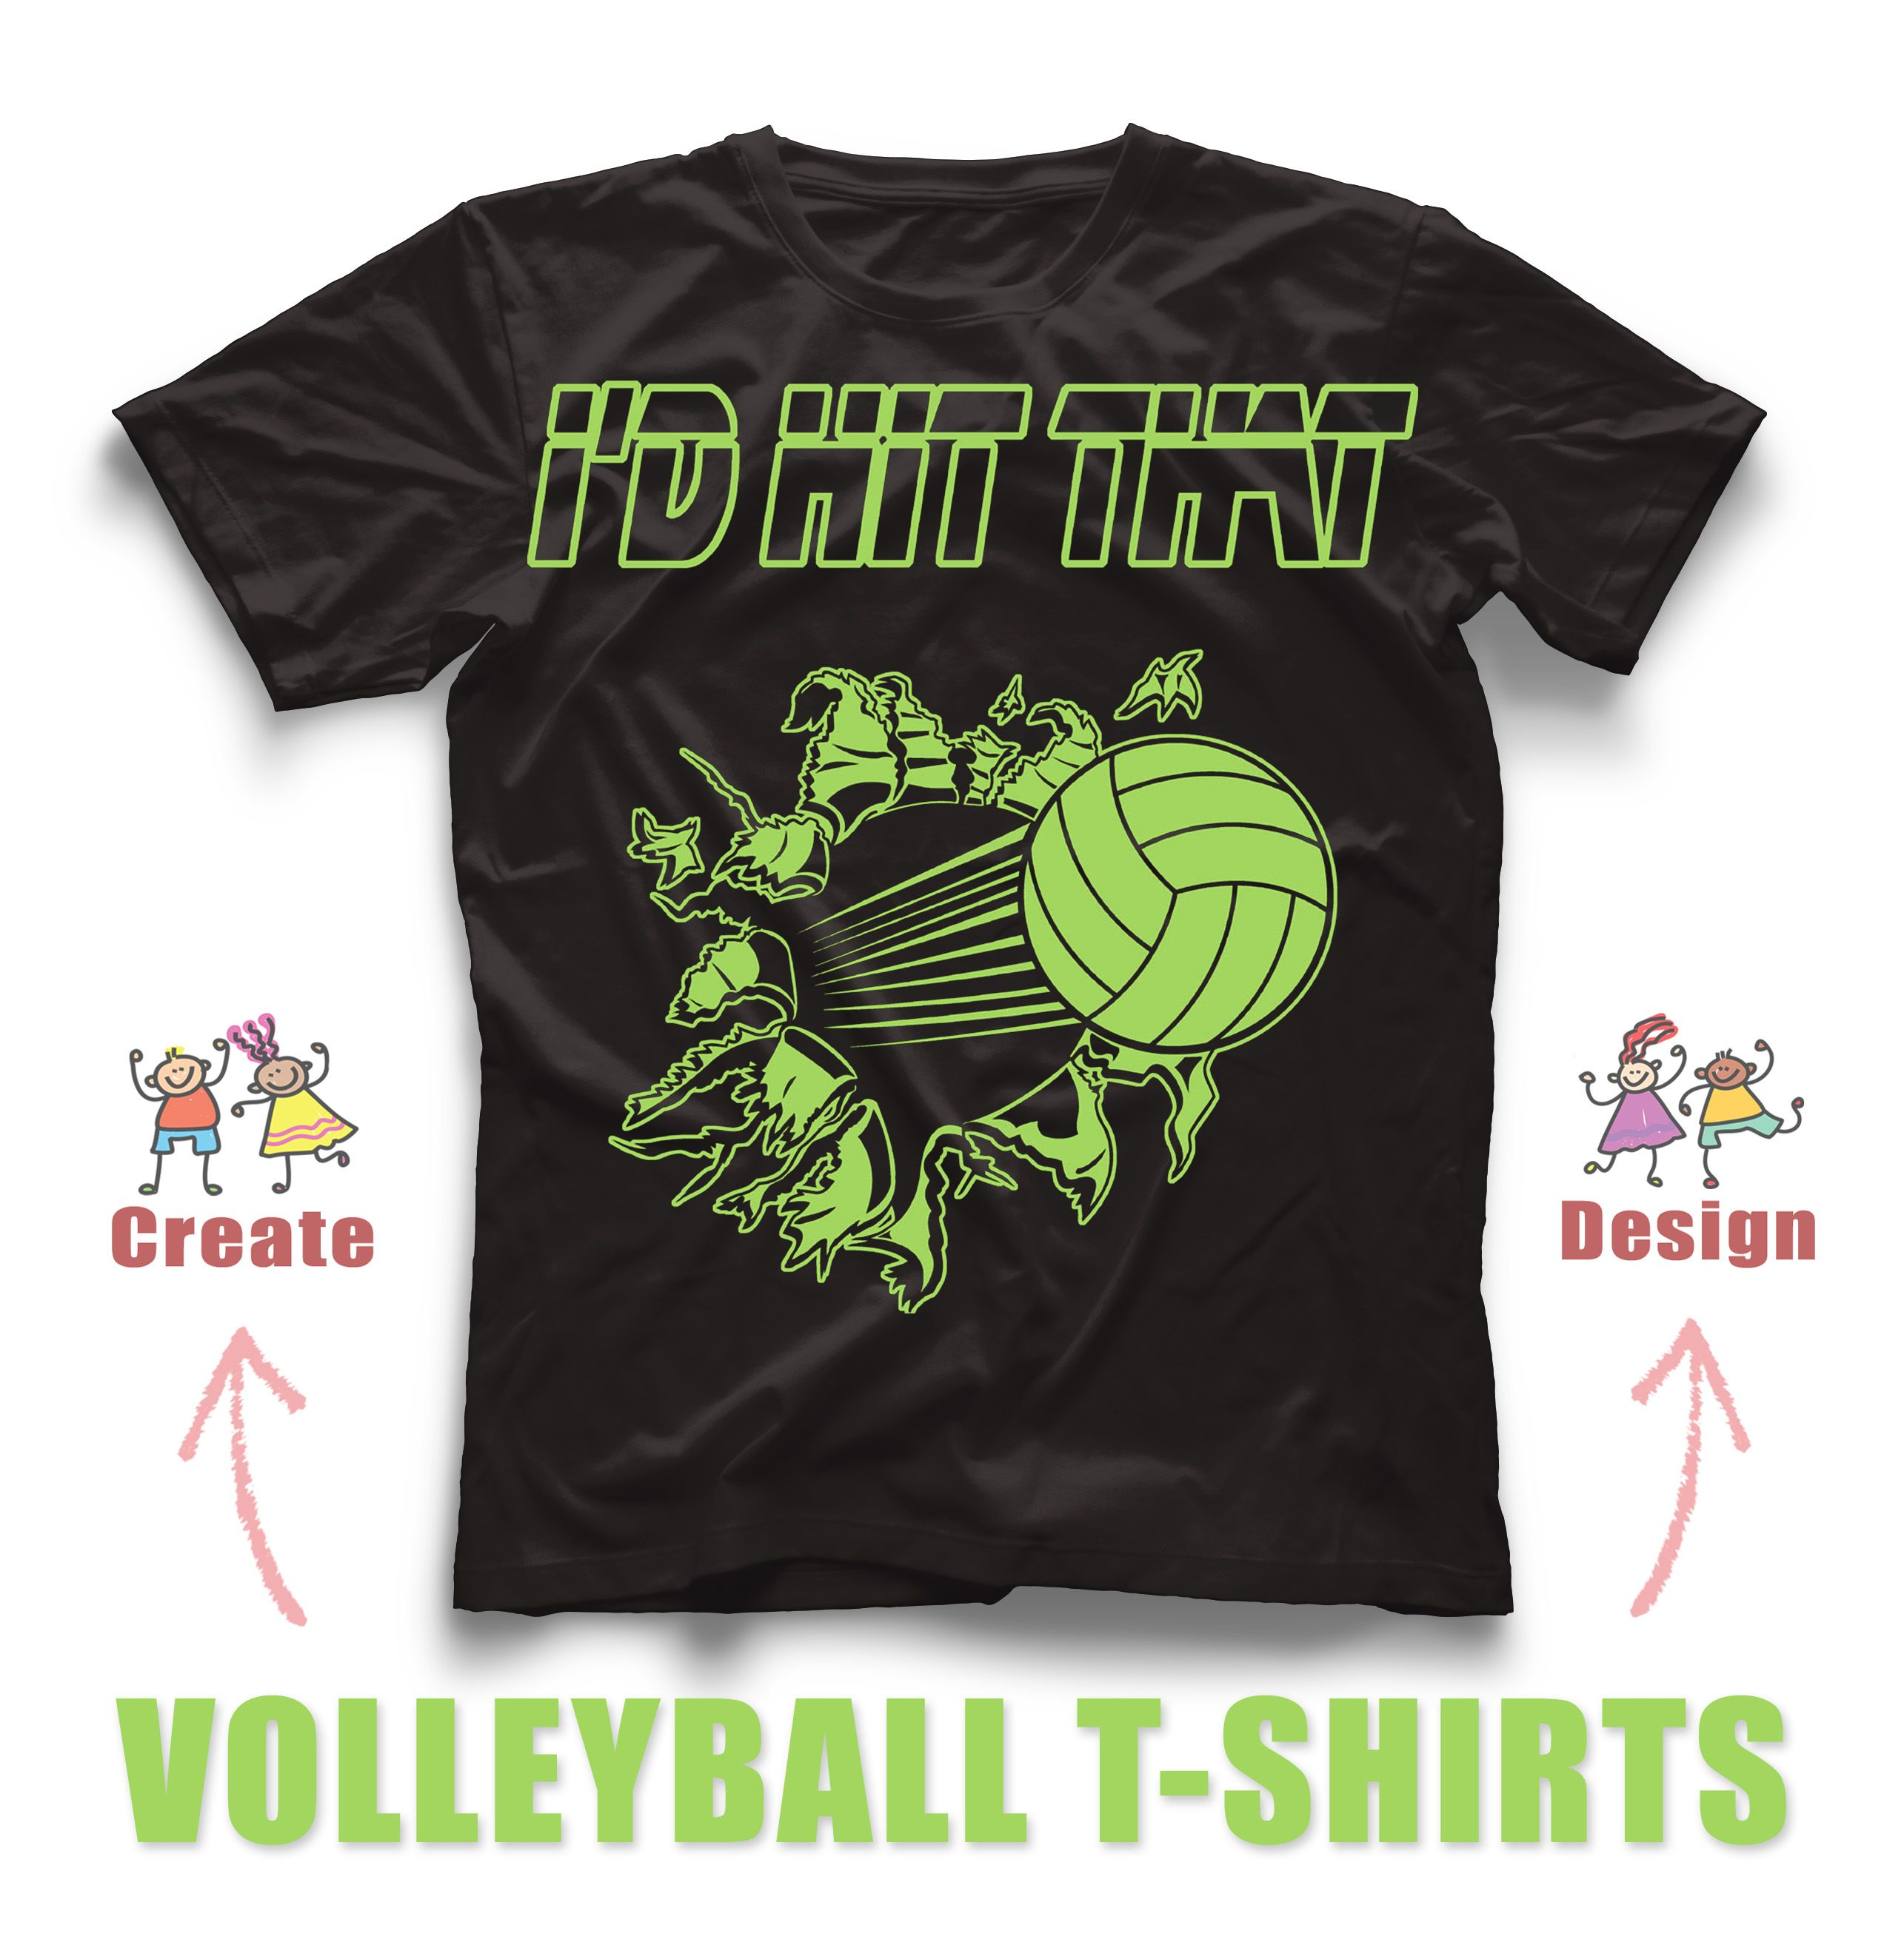 Volleyball Team Shirts Ideas Bcd Tofu House